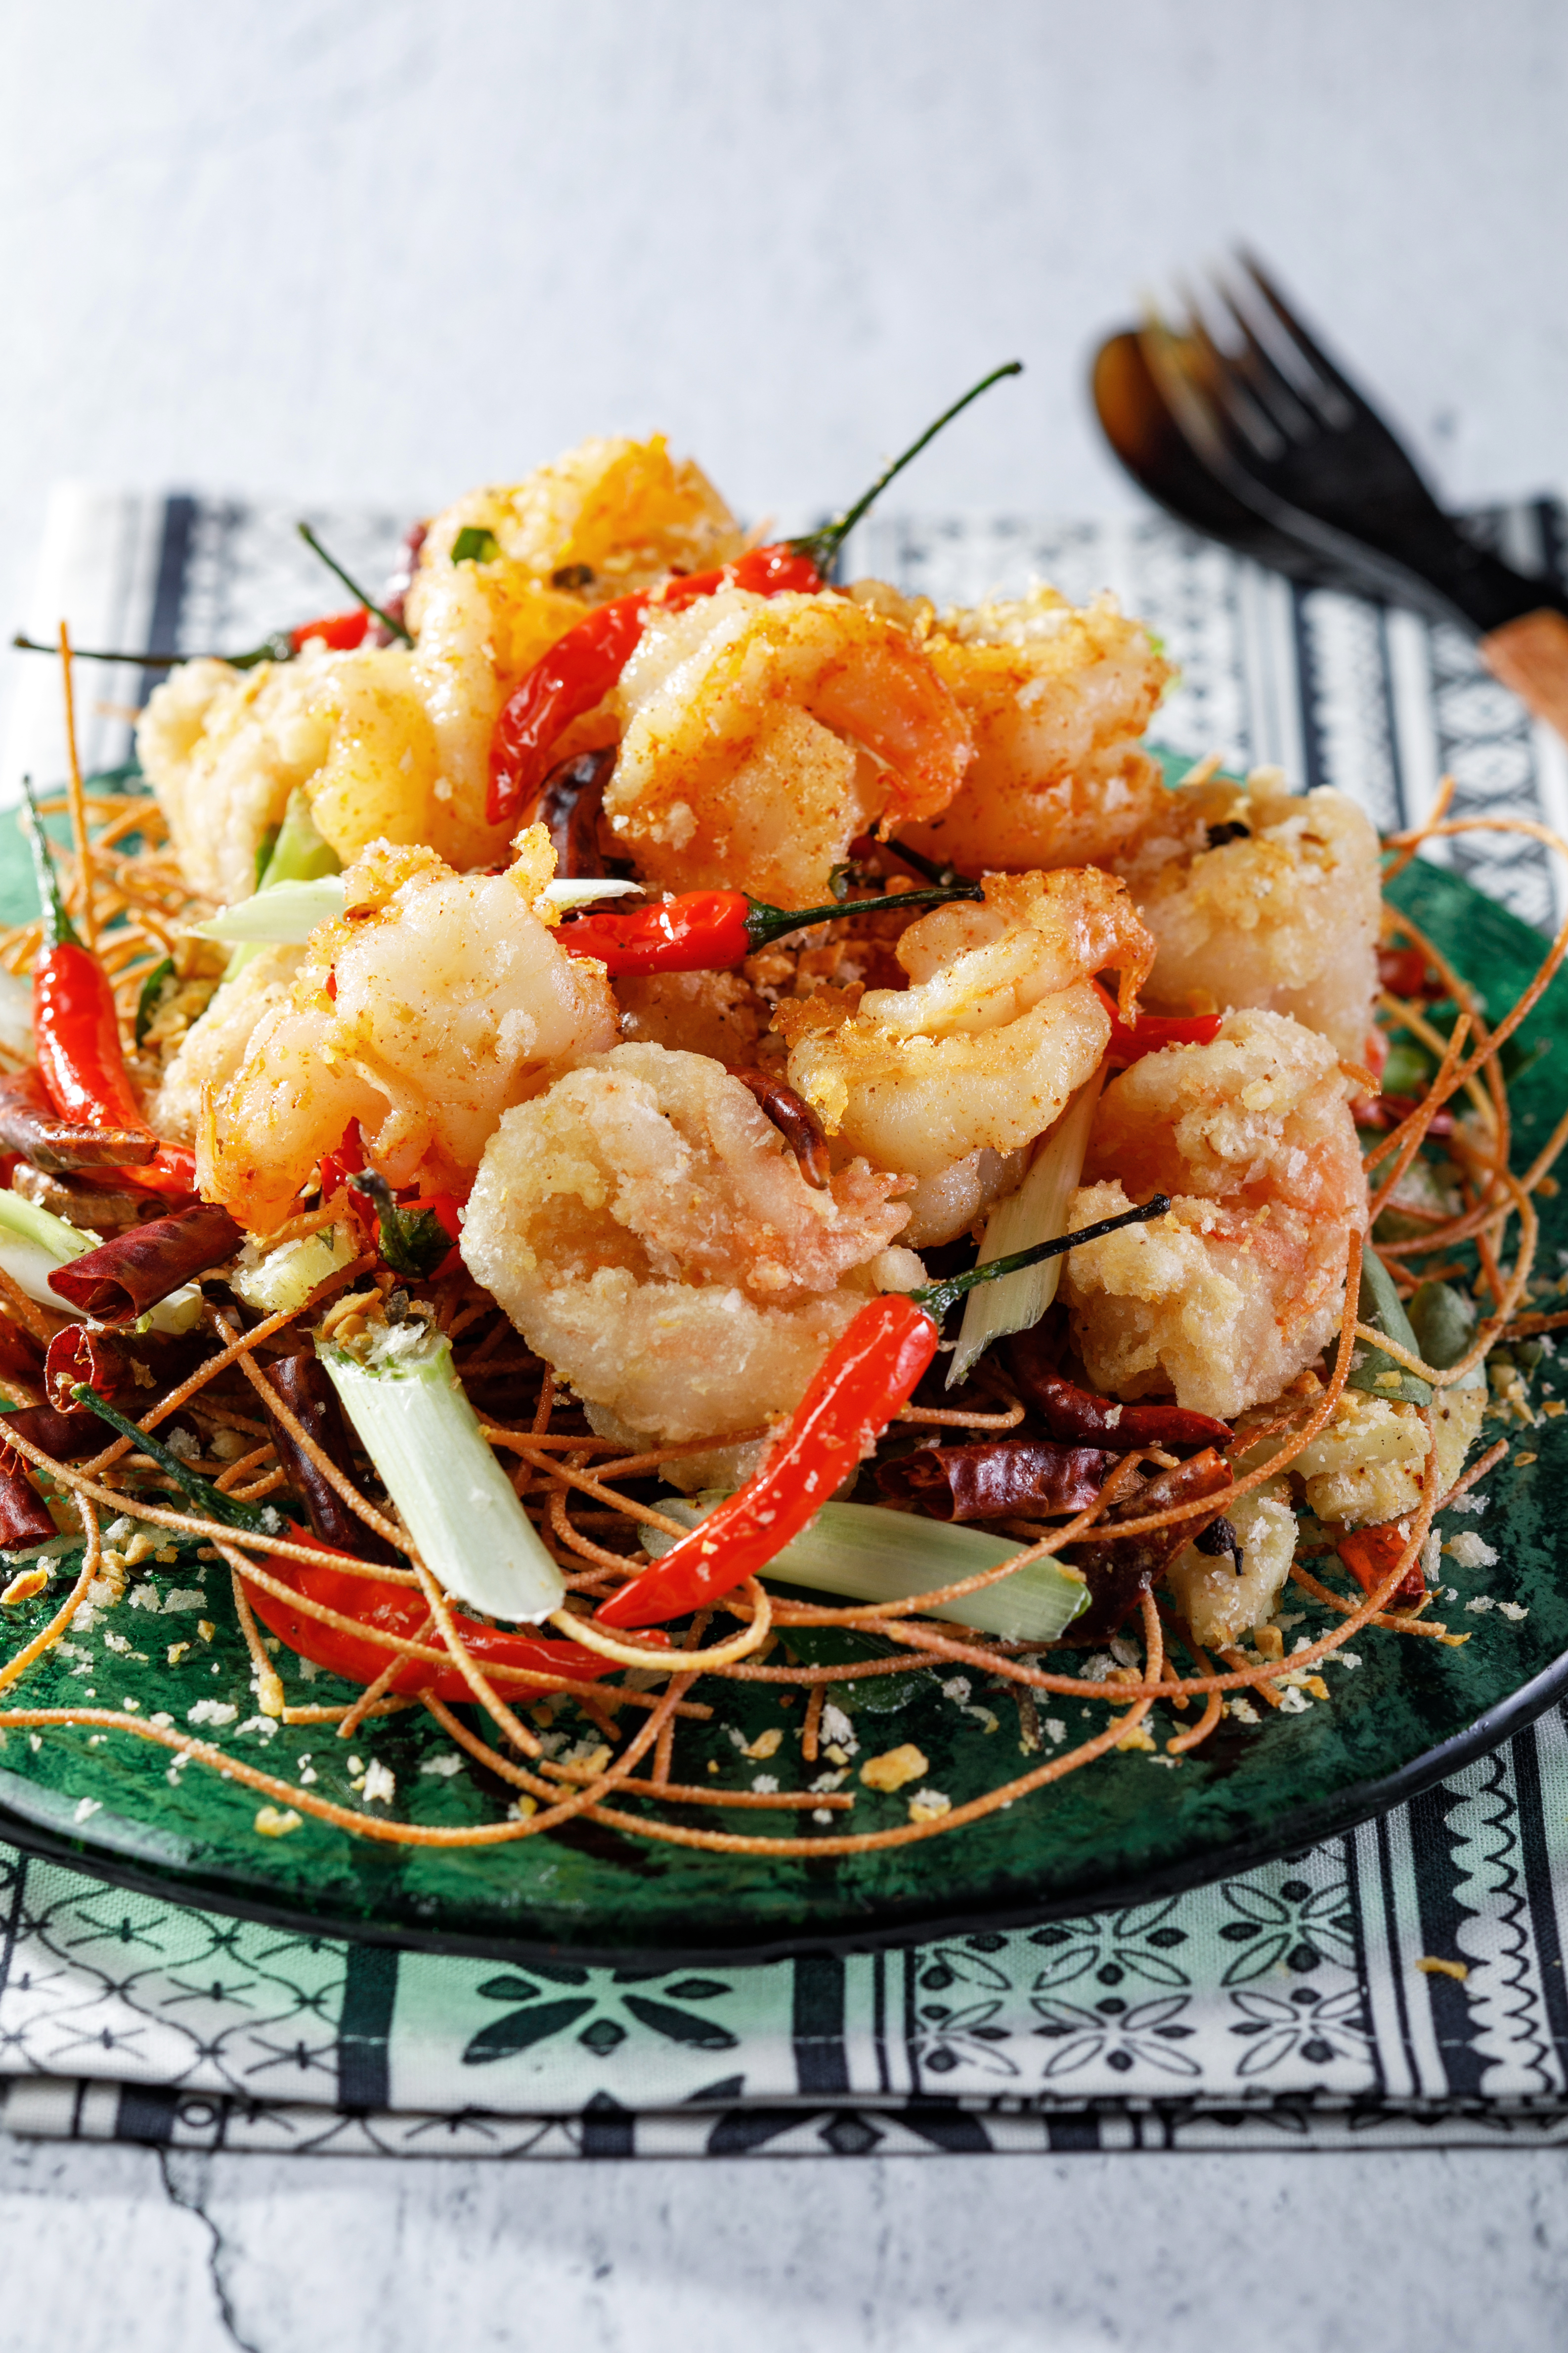 """Up to 35% discount on """"Typhoon Shelter Seafood"""" Dinner Buffet (Validity:  June 1 - 30, 2019)"""